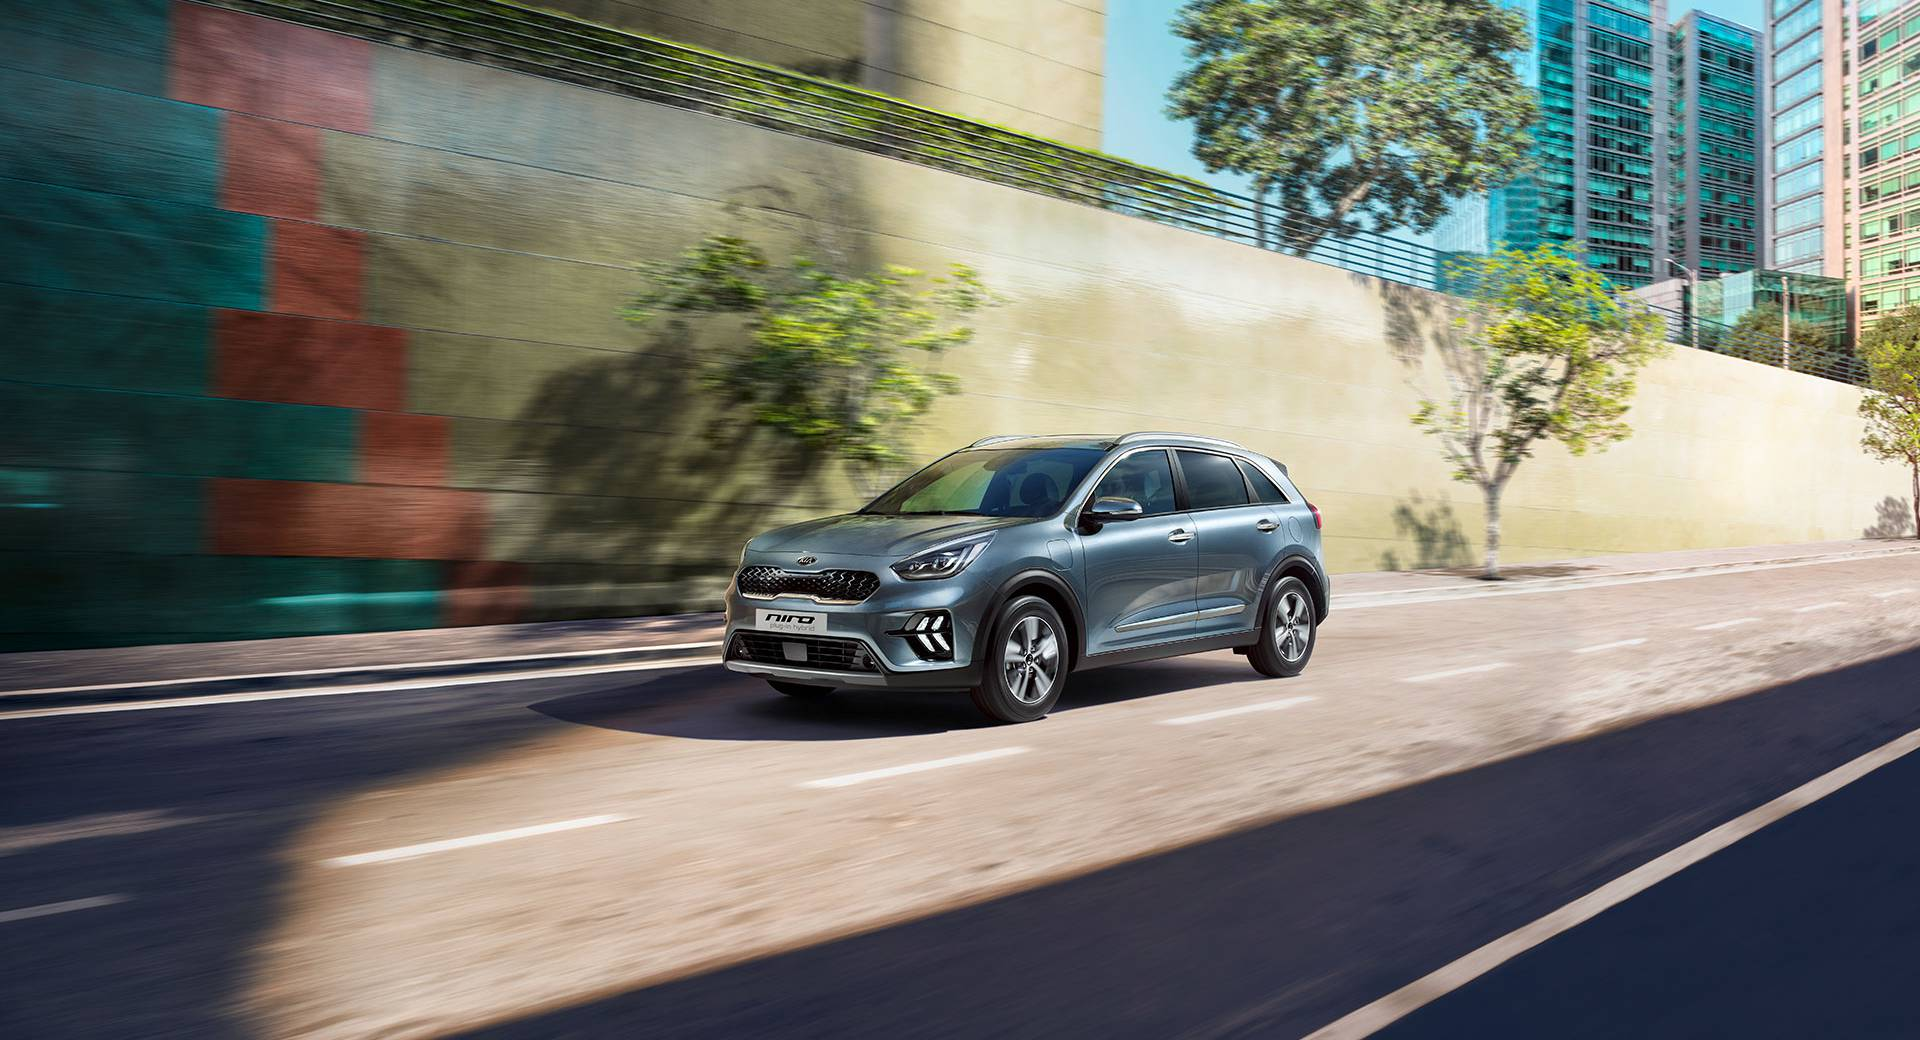 Kia Niro Hybrid Makes Awful Noise While Creeping Forward in Review